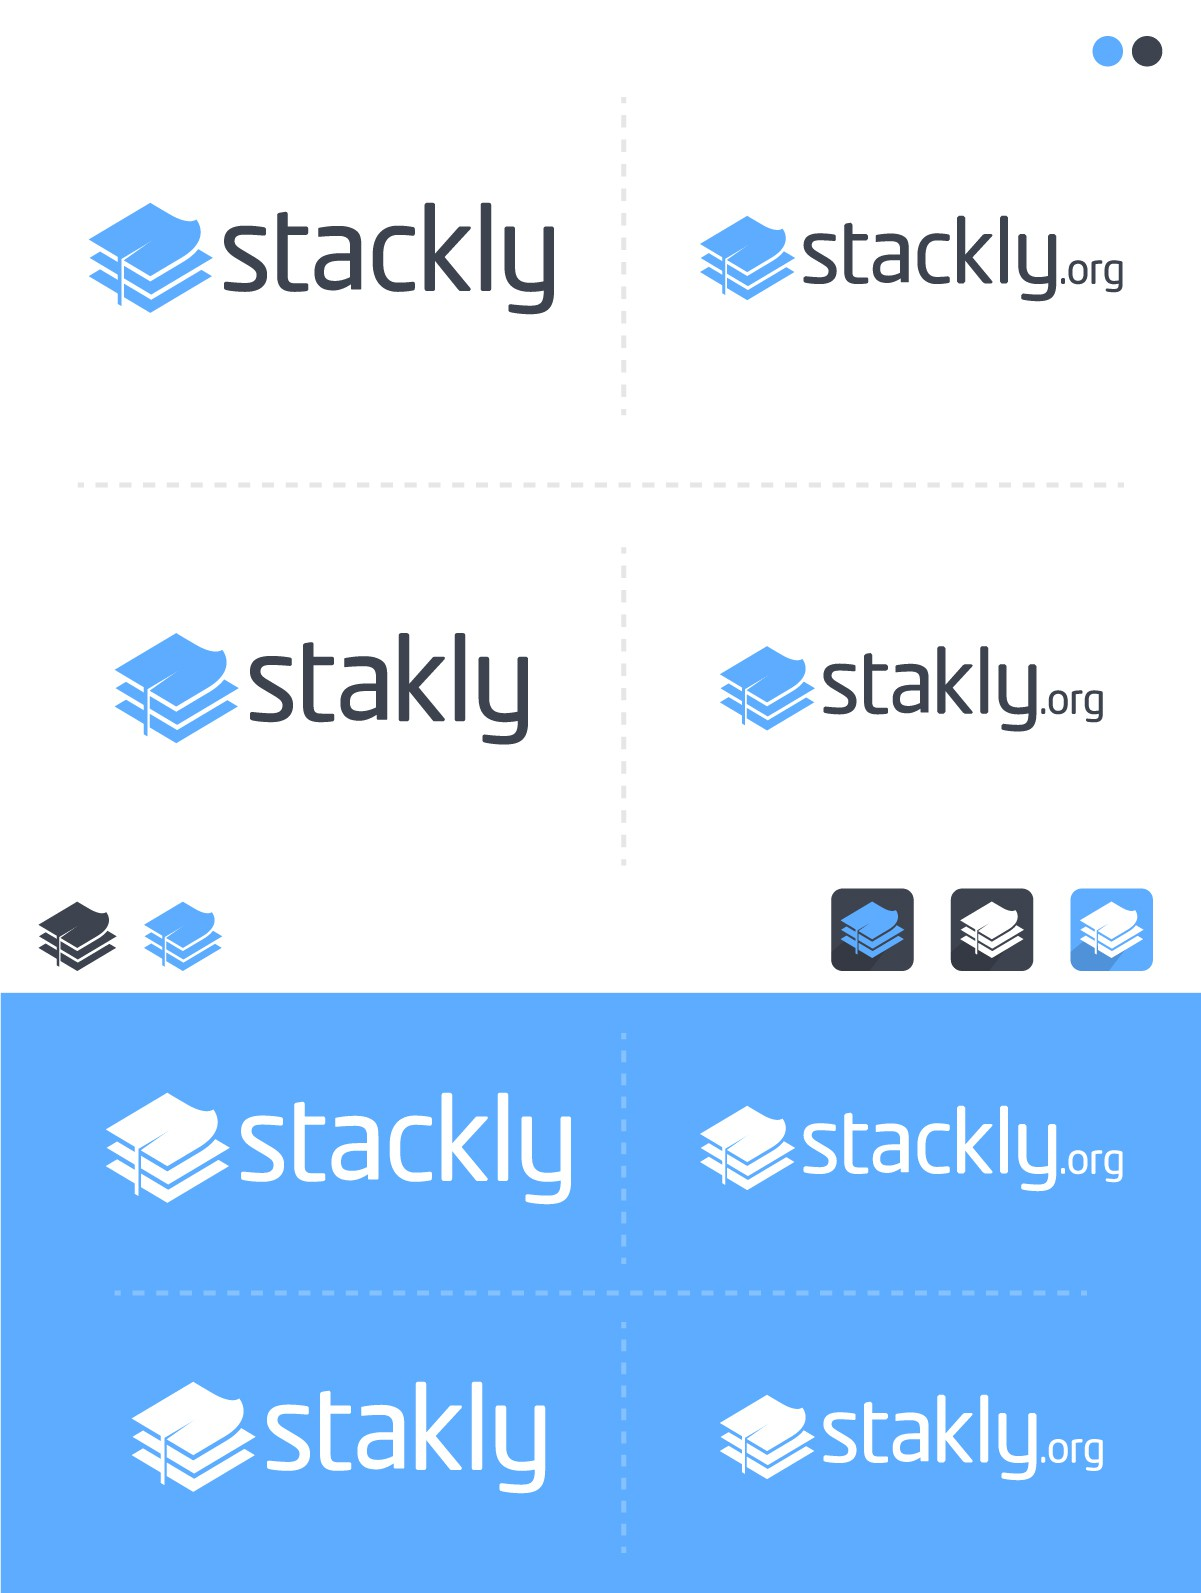 Make stackly a logo that helps scholarly research loosen its tie